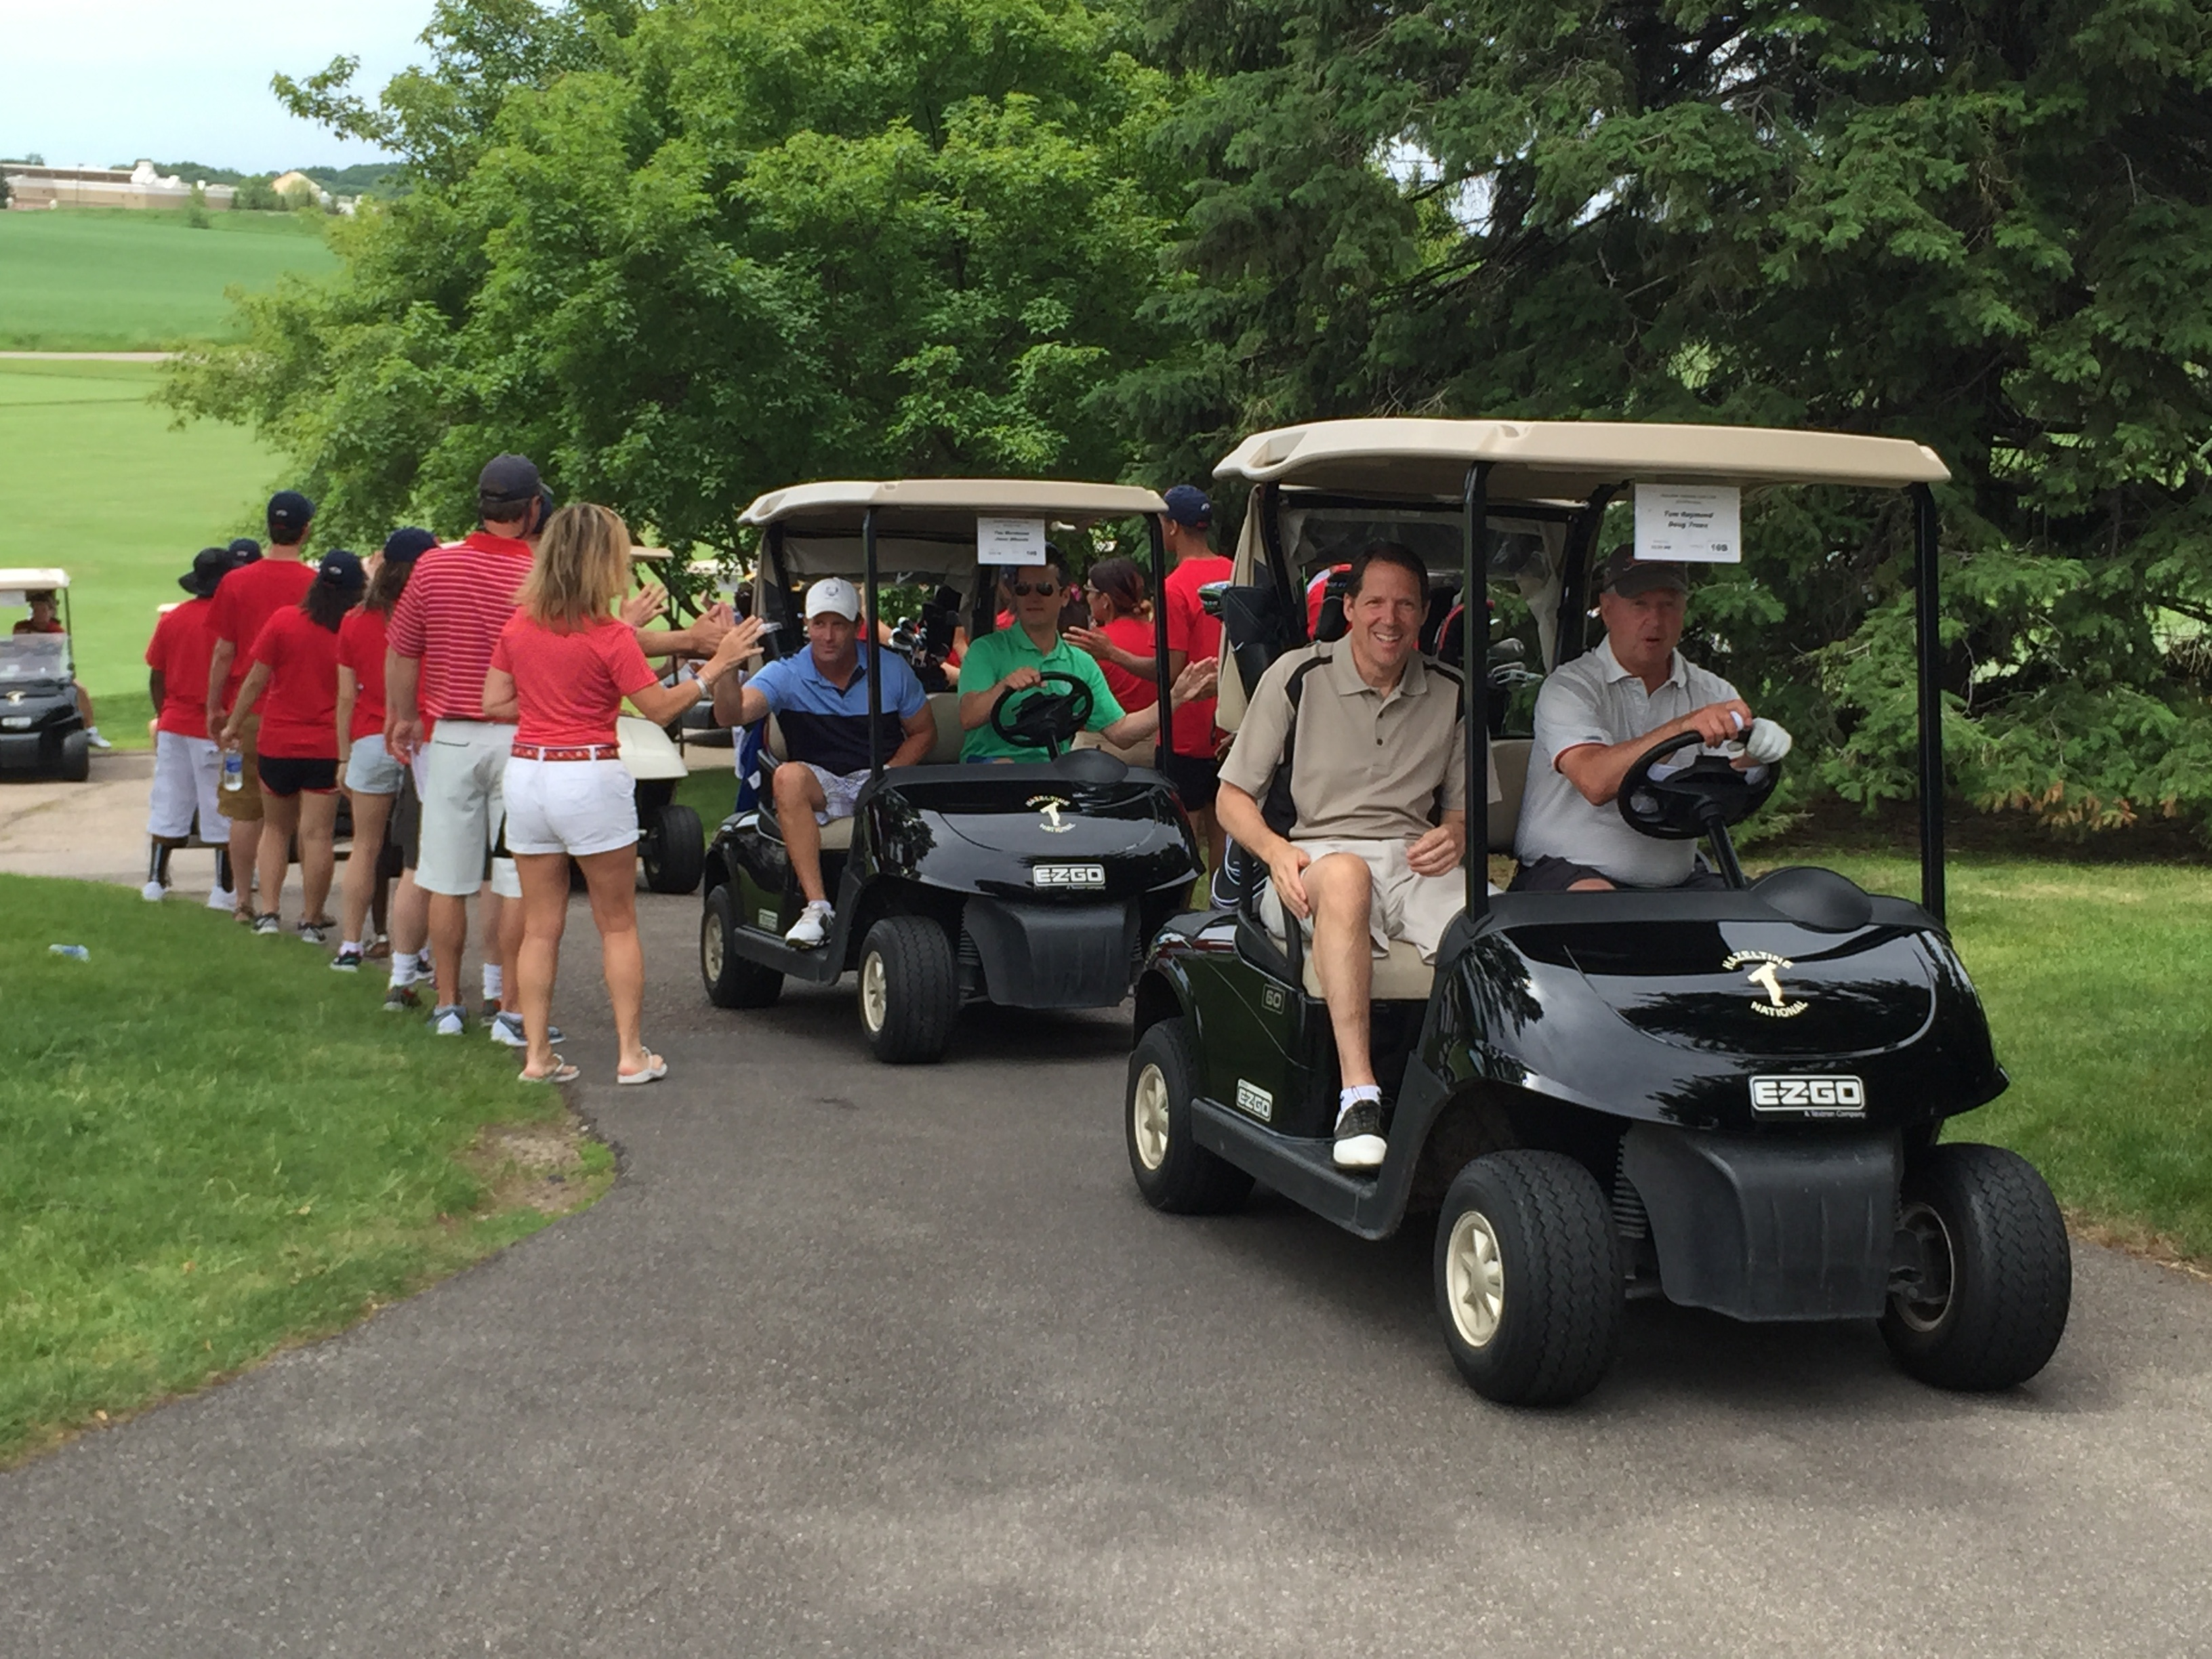 Players head out to the shotgun start of a private golf tournament at Hazeltine National Golf Club